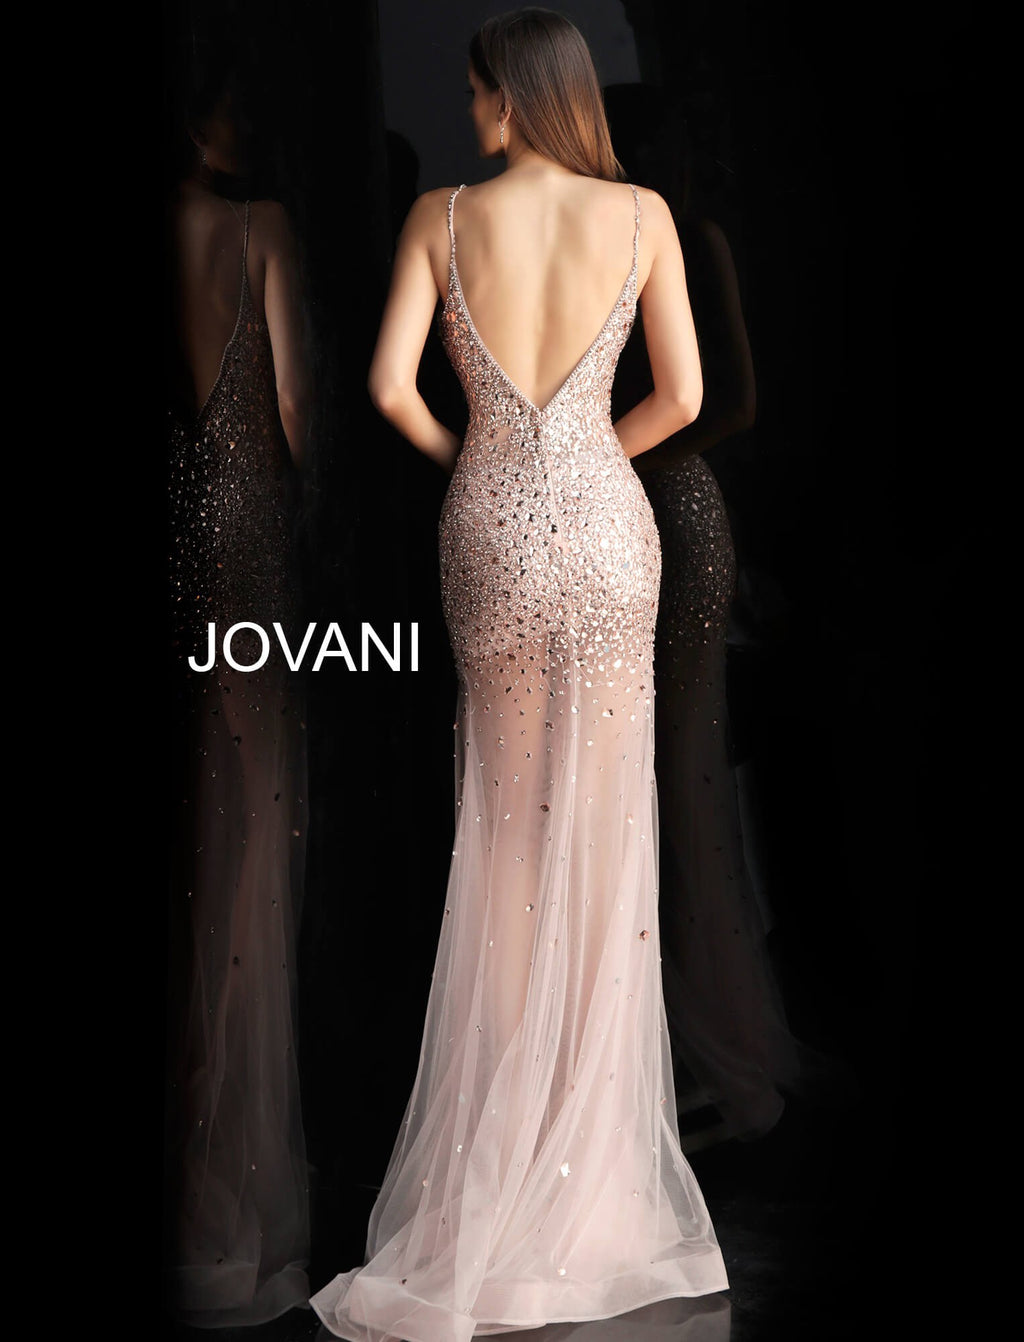 JOVANI 57300 Rhinestone Embellished Illusion Gown - CYC Boutique